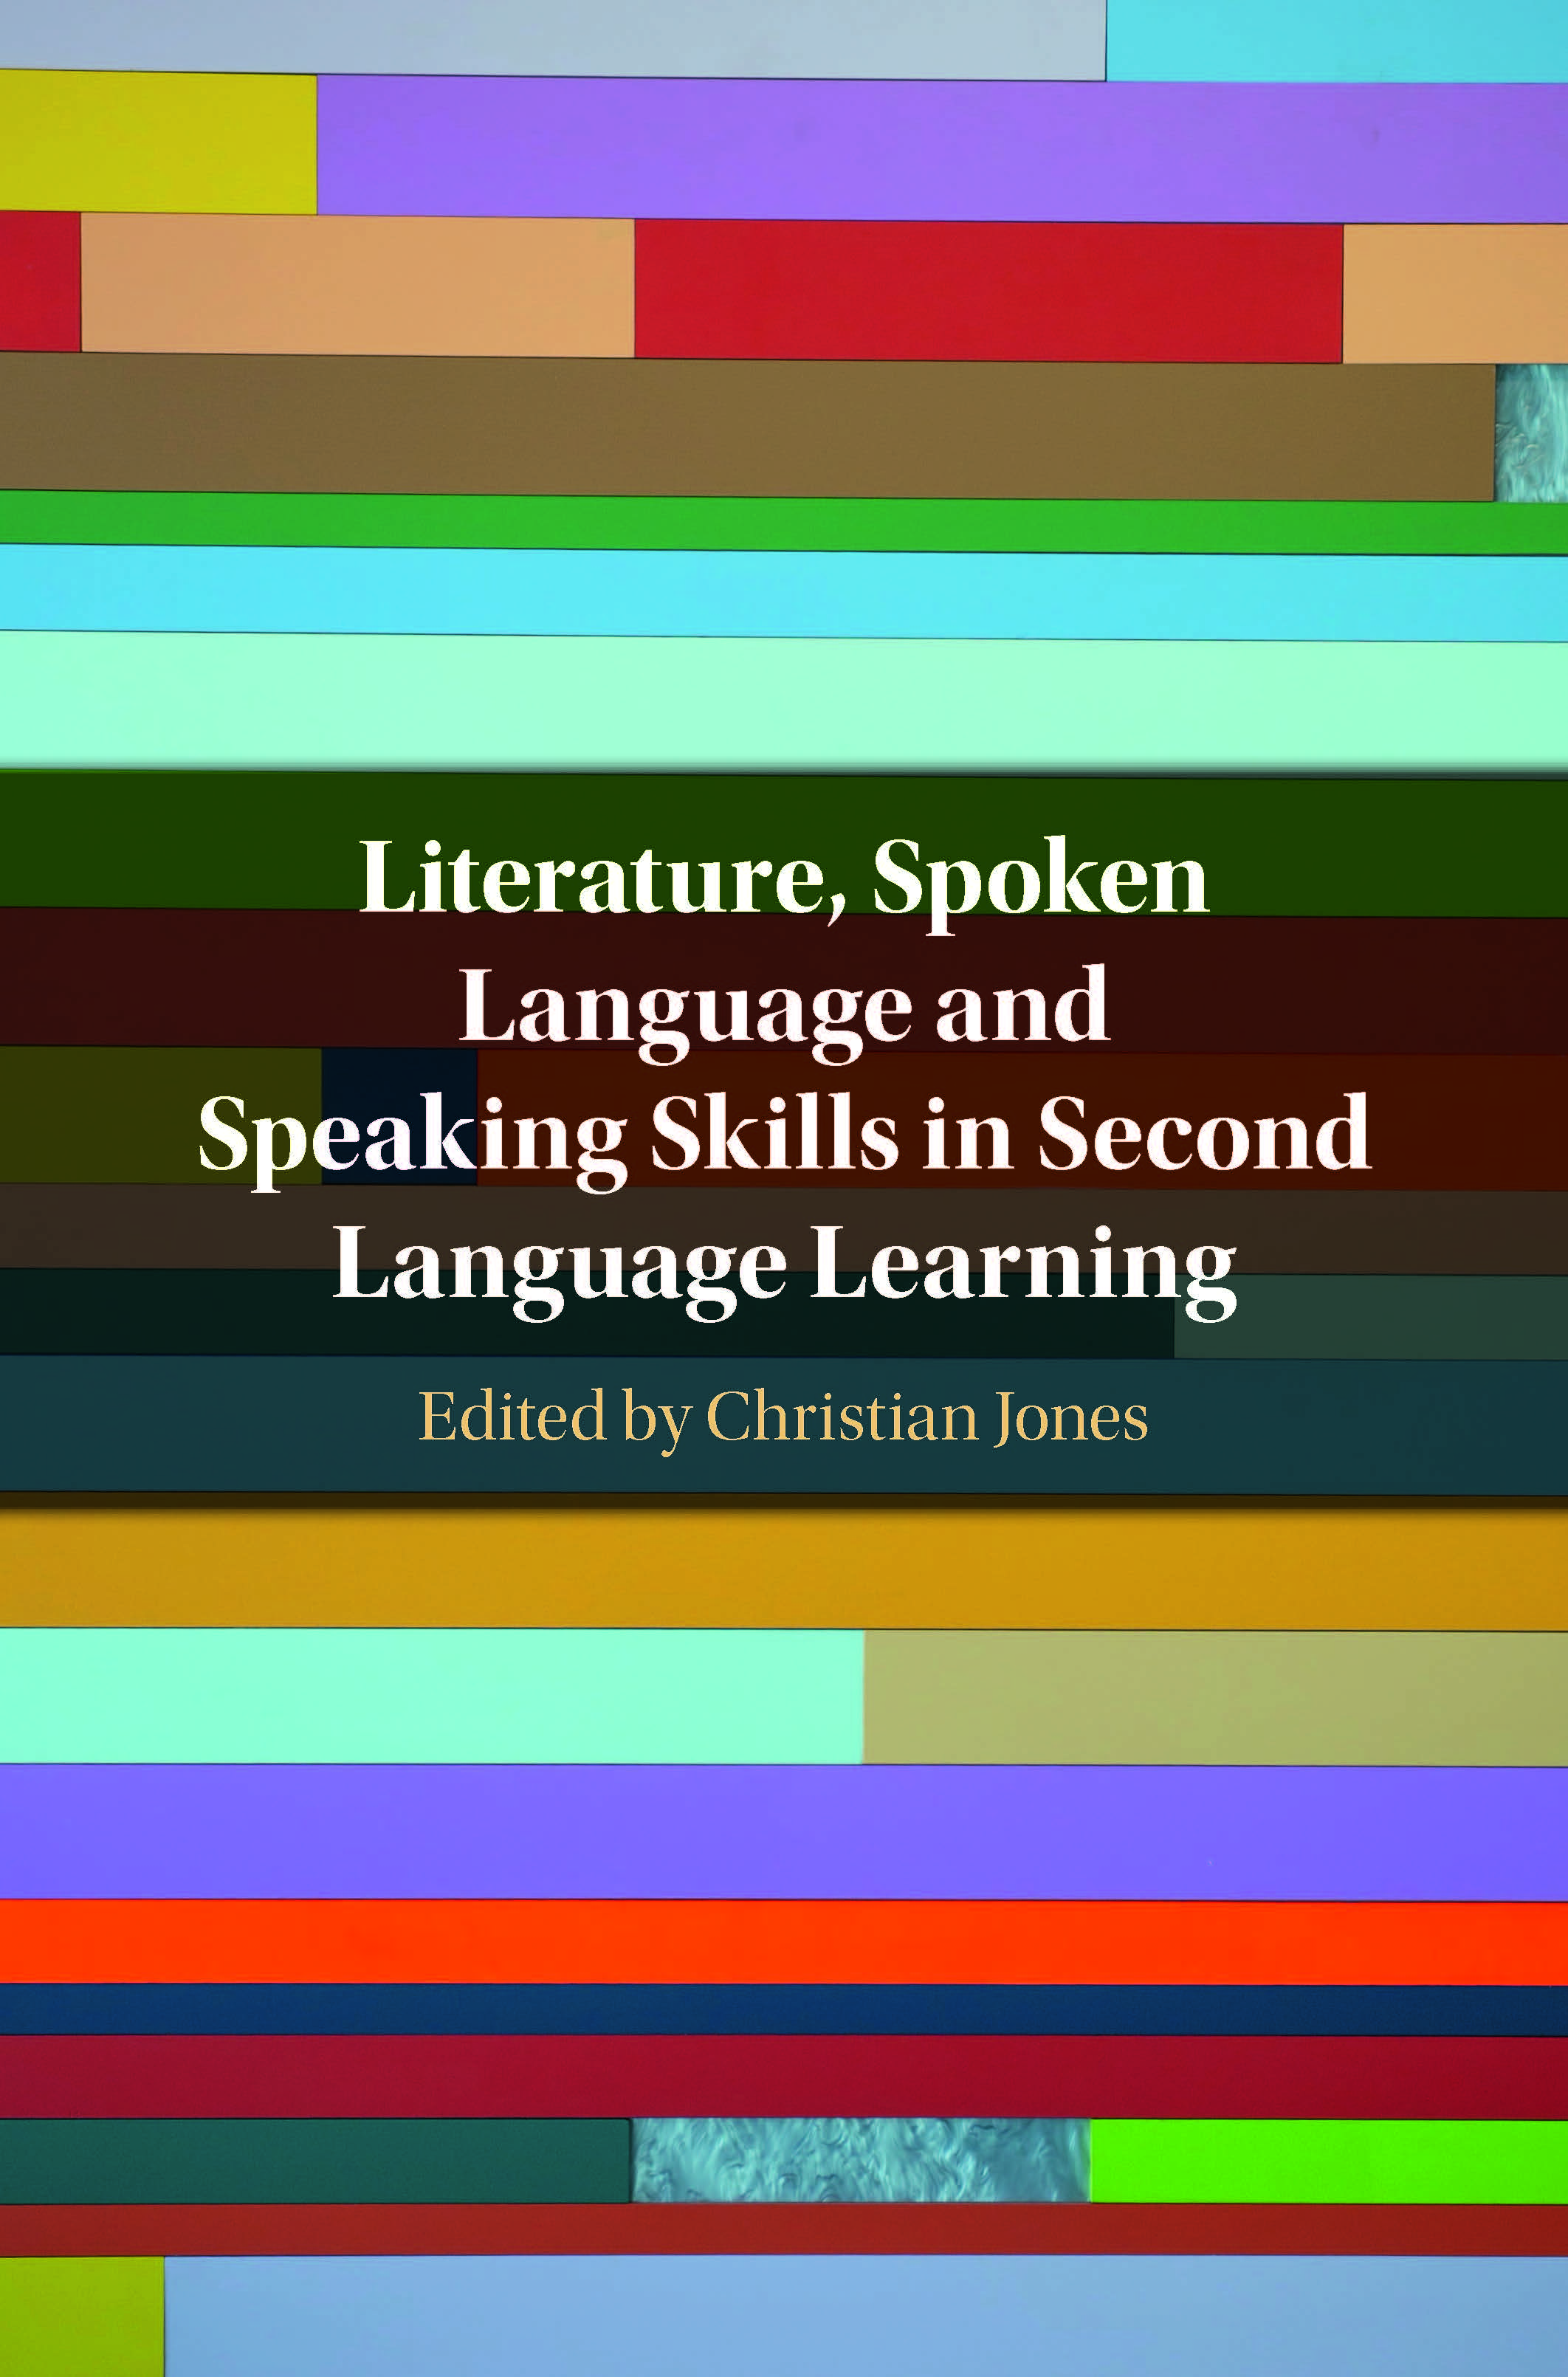 Literature, Spoken Language and Speaking Skills in Second Language Learning_Cover